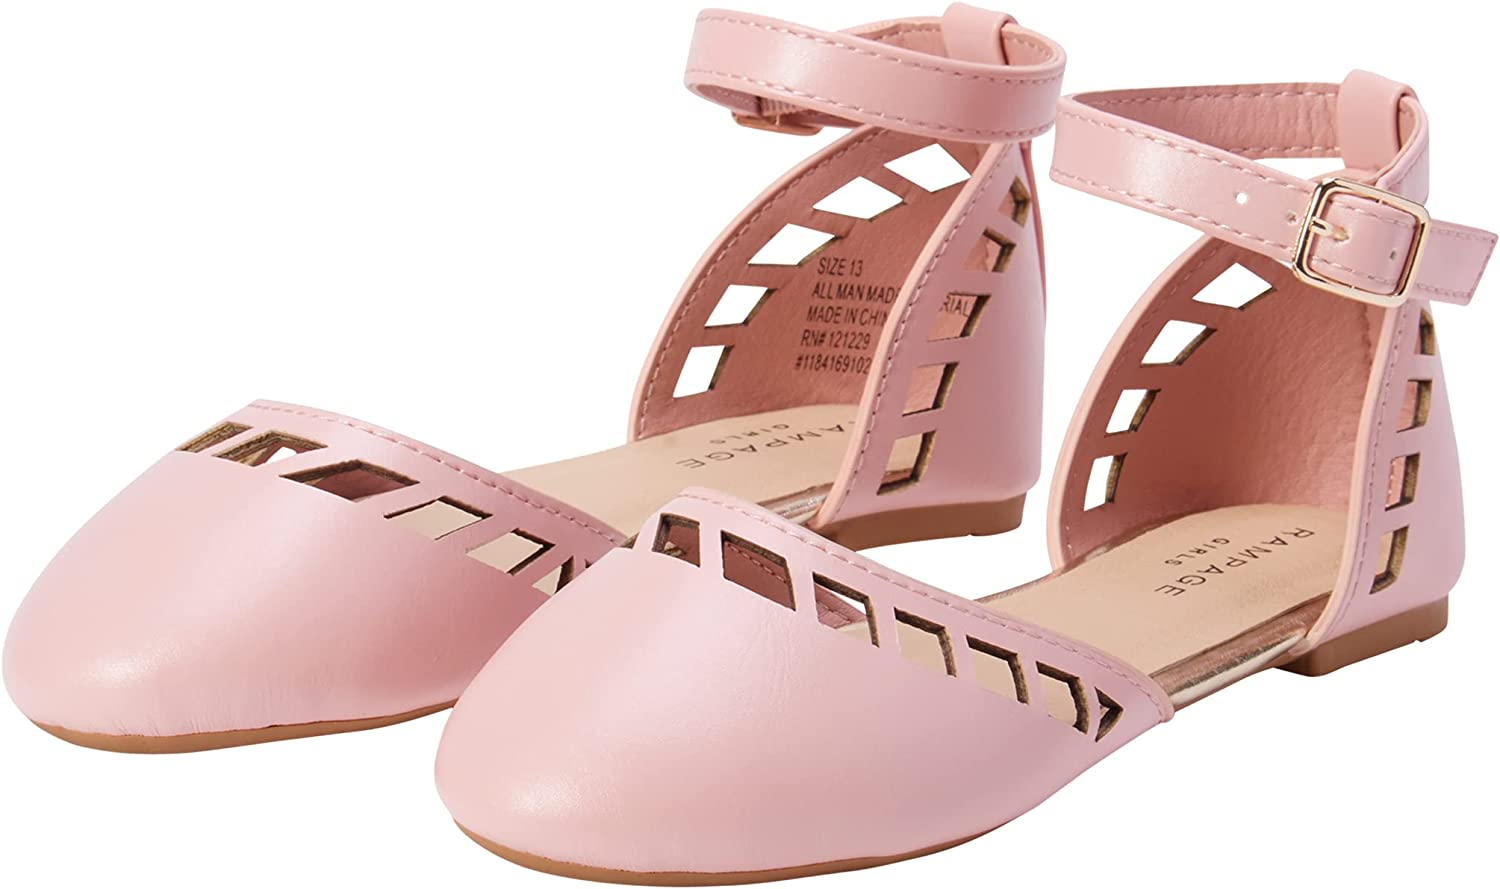 Rampage Girls' Sandals - Limited time cheap sale Classic with Buckle Flats Ballet Excellent Ankle